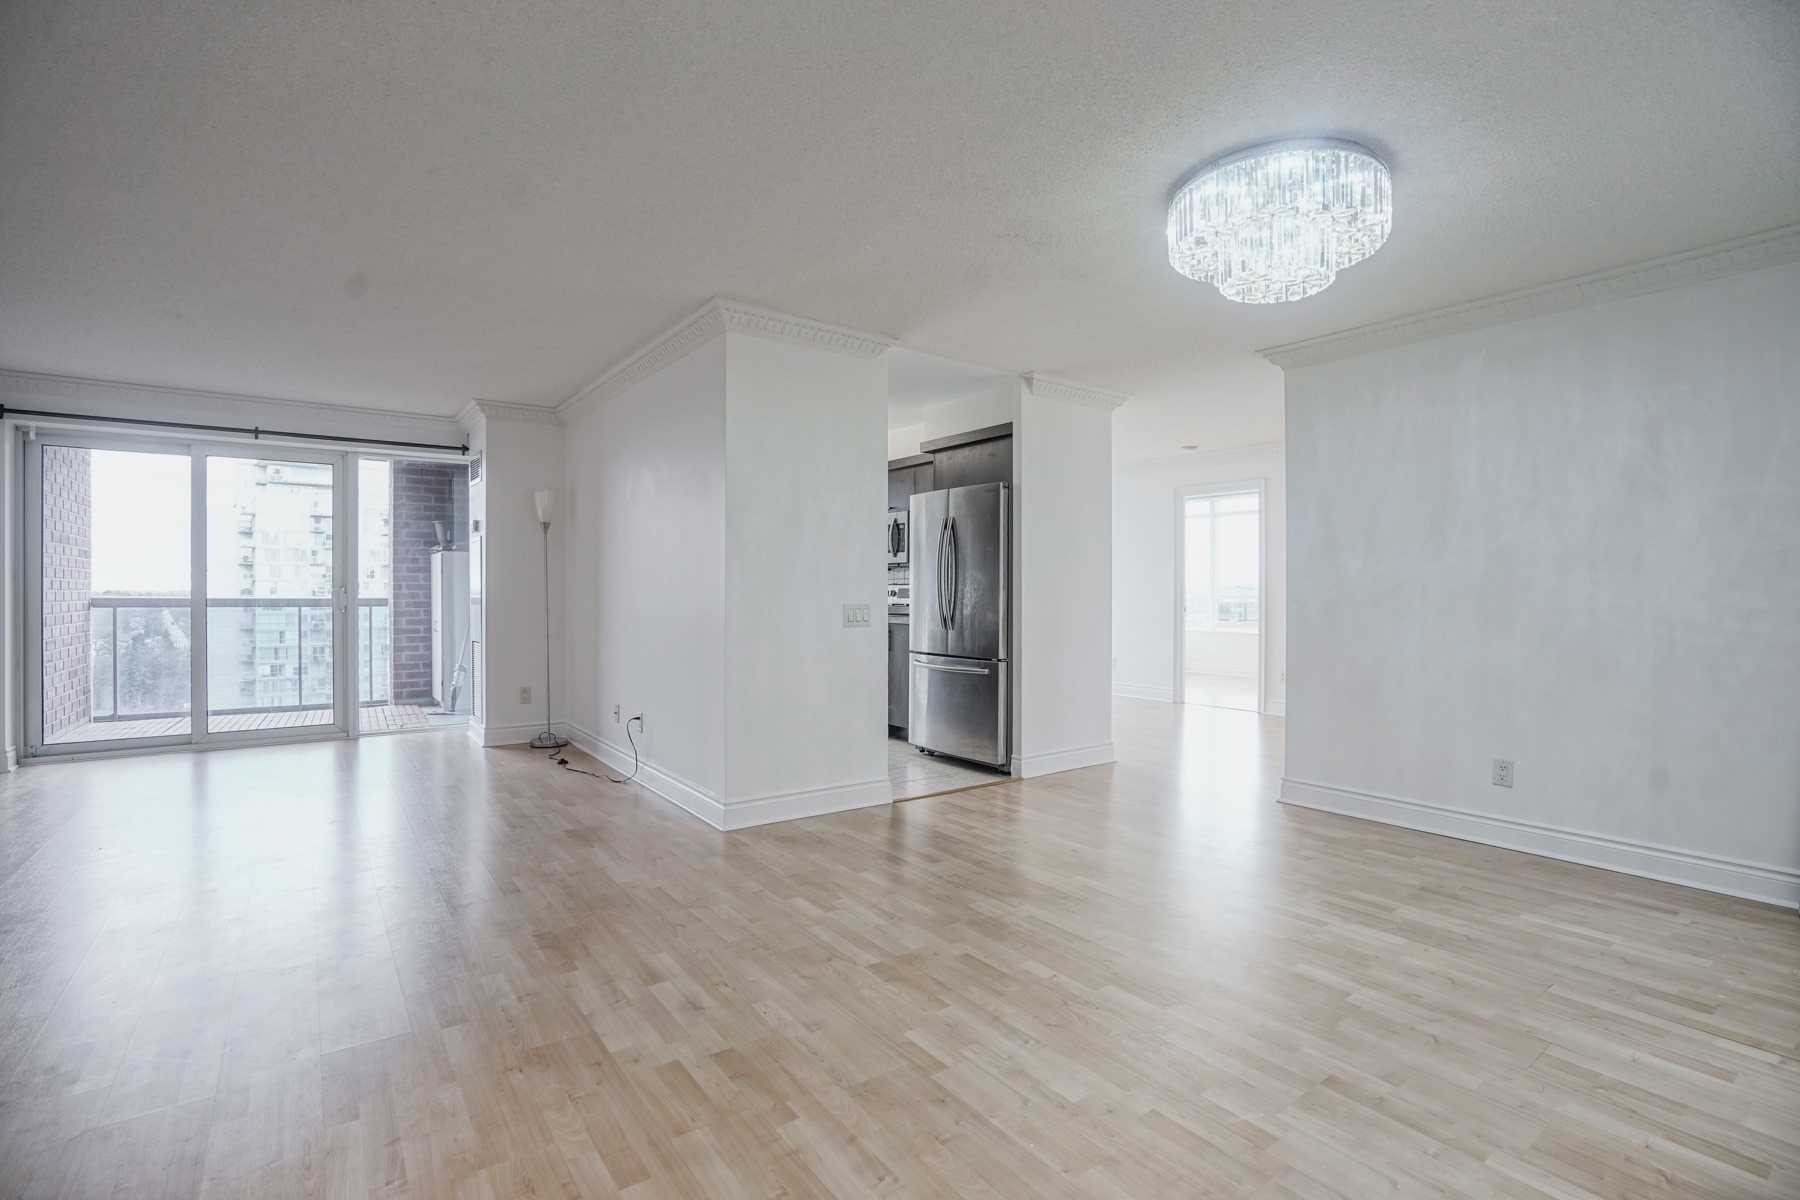 For Sale: 1107 - 8 Mckee Avenue, Toronto, ON | 3 Bed, 2 Bath Condo for $889000.00. See 22 photos!